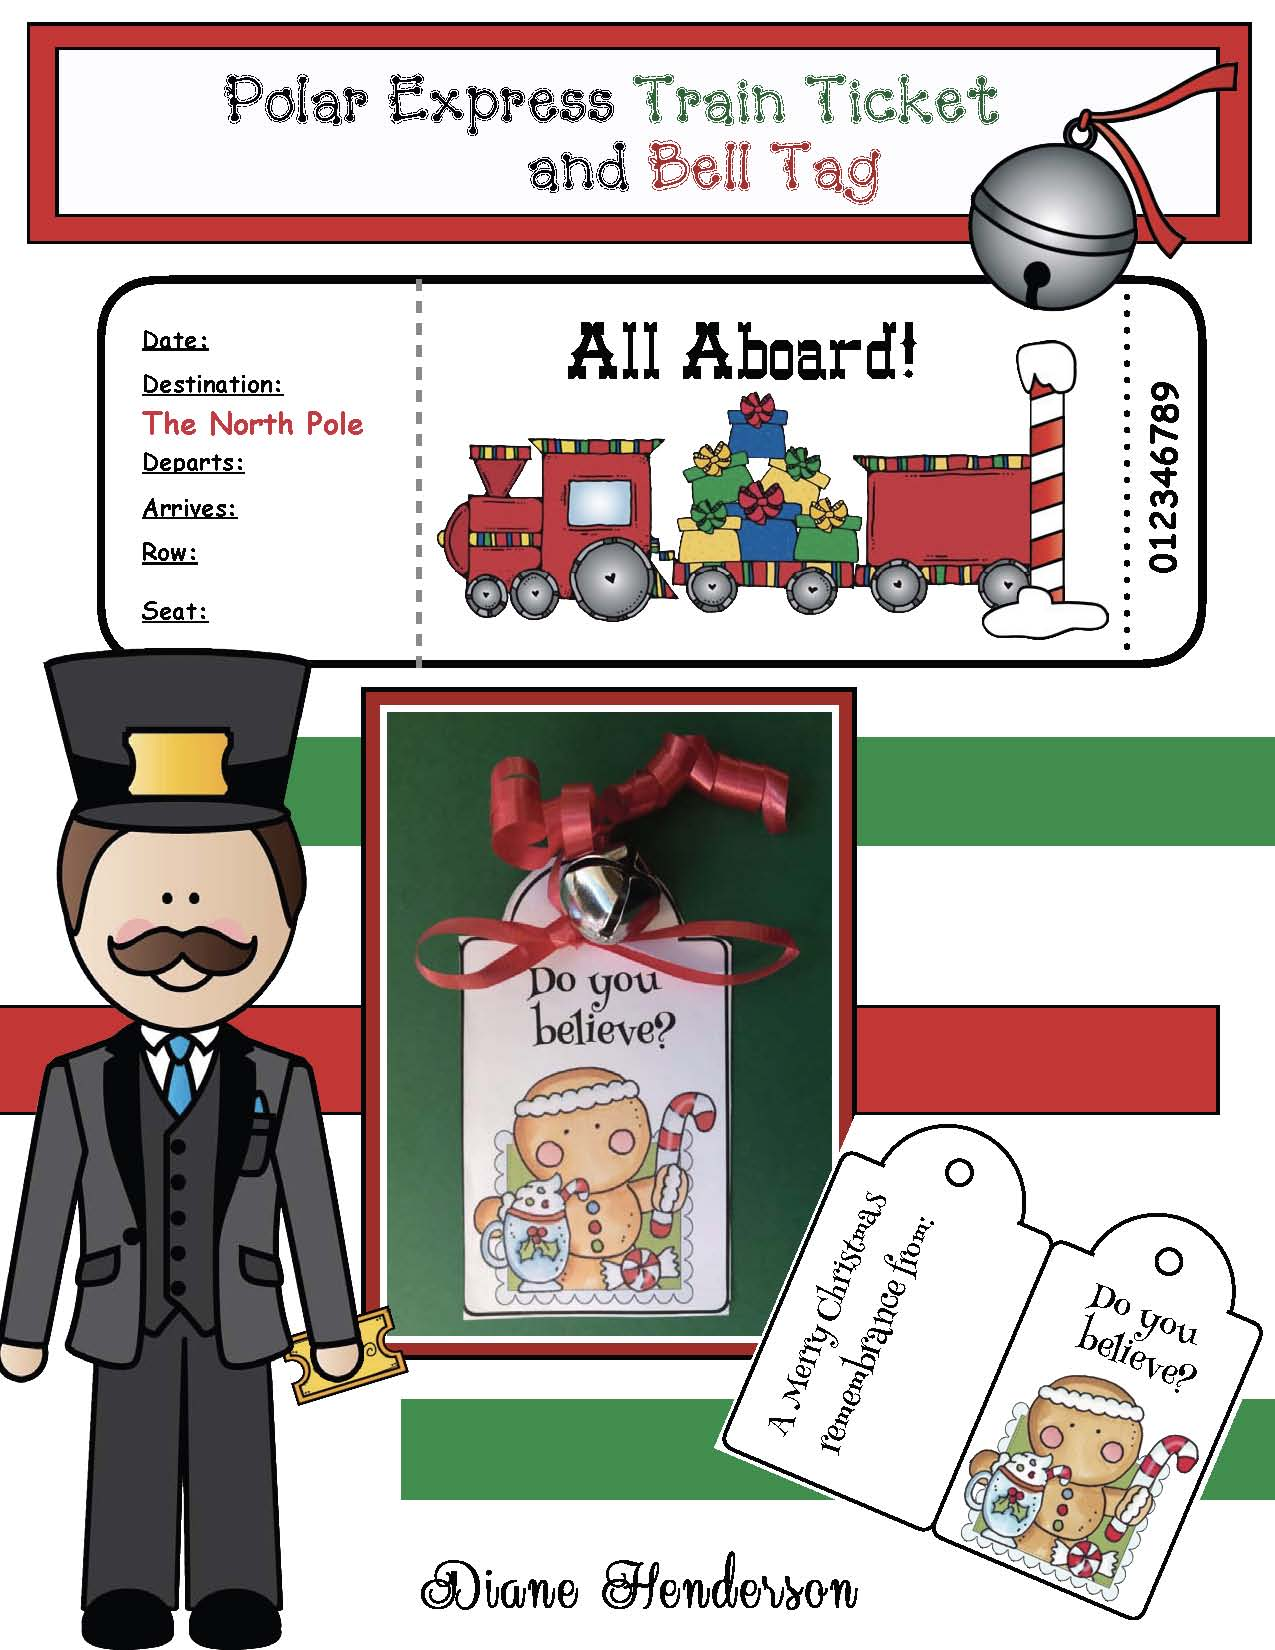 Free Polar Express Train ticket, Polar Express gift tag for a bell